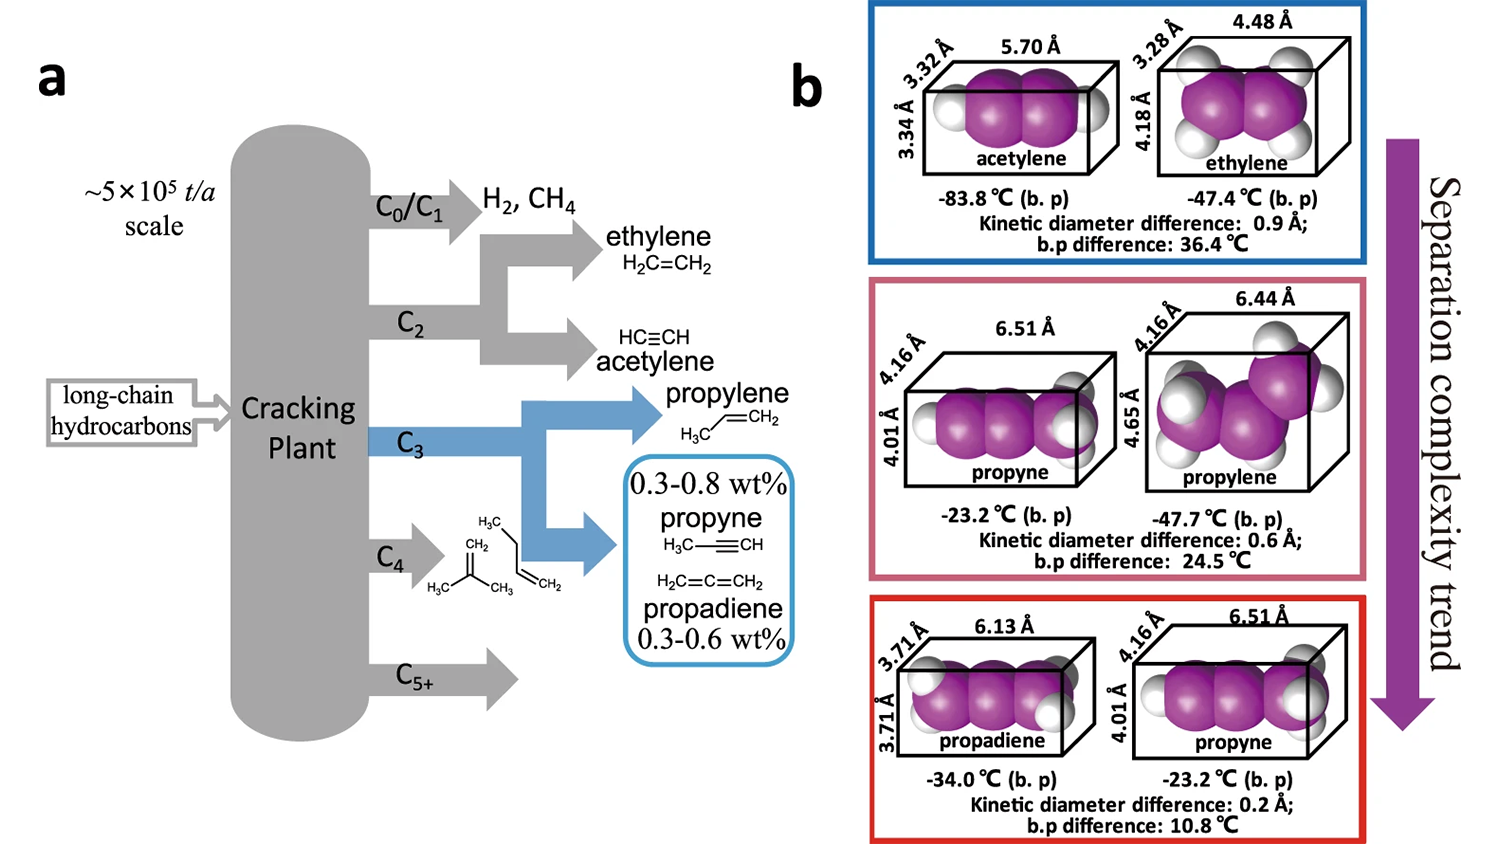 Figure of the major sources and separation complexity of light hydrocarbons